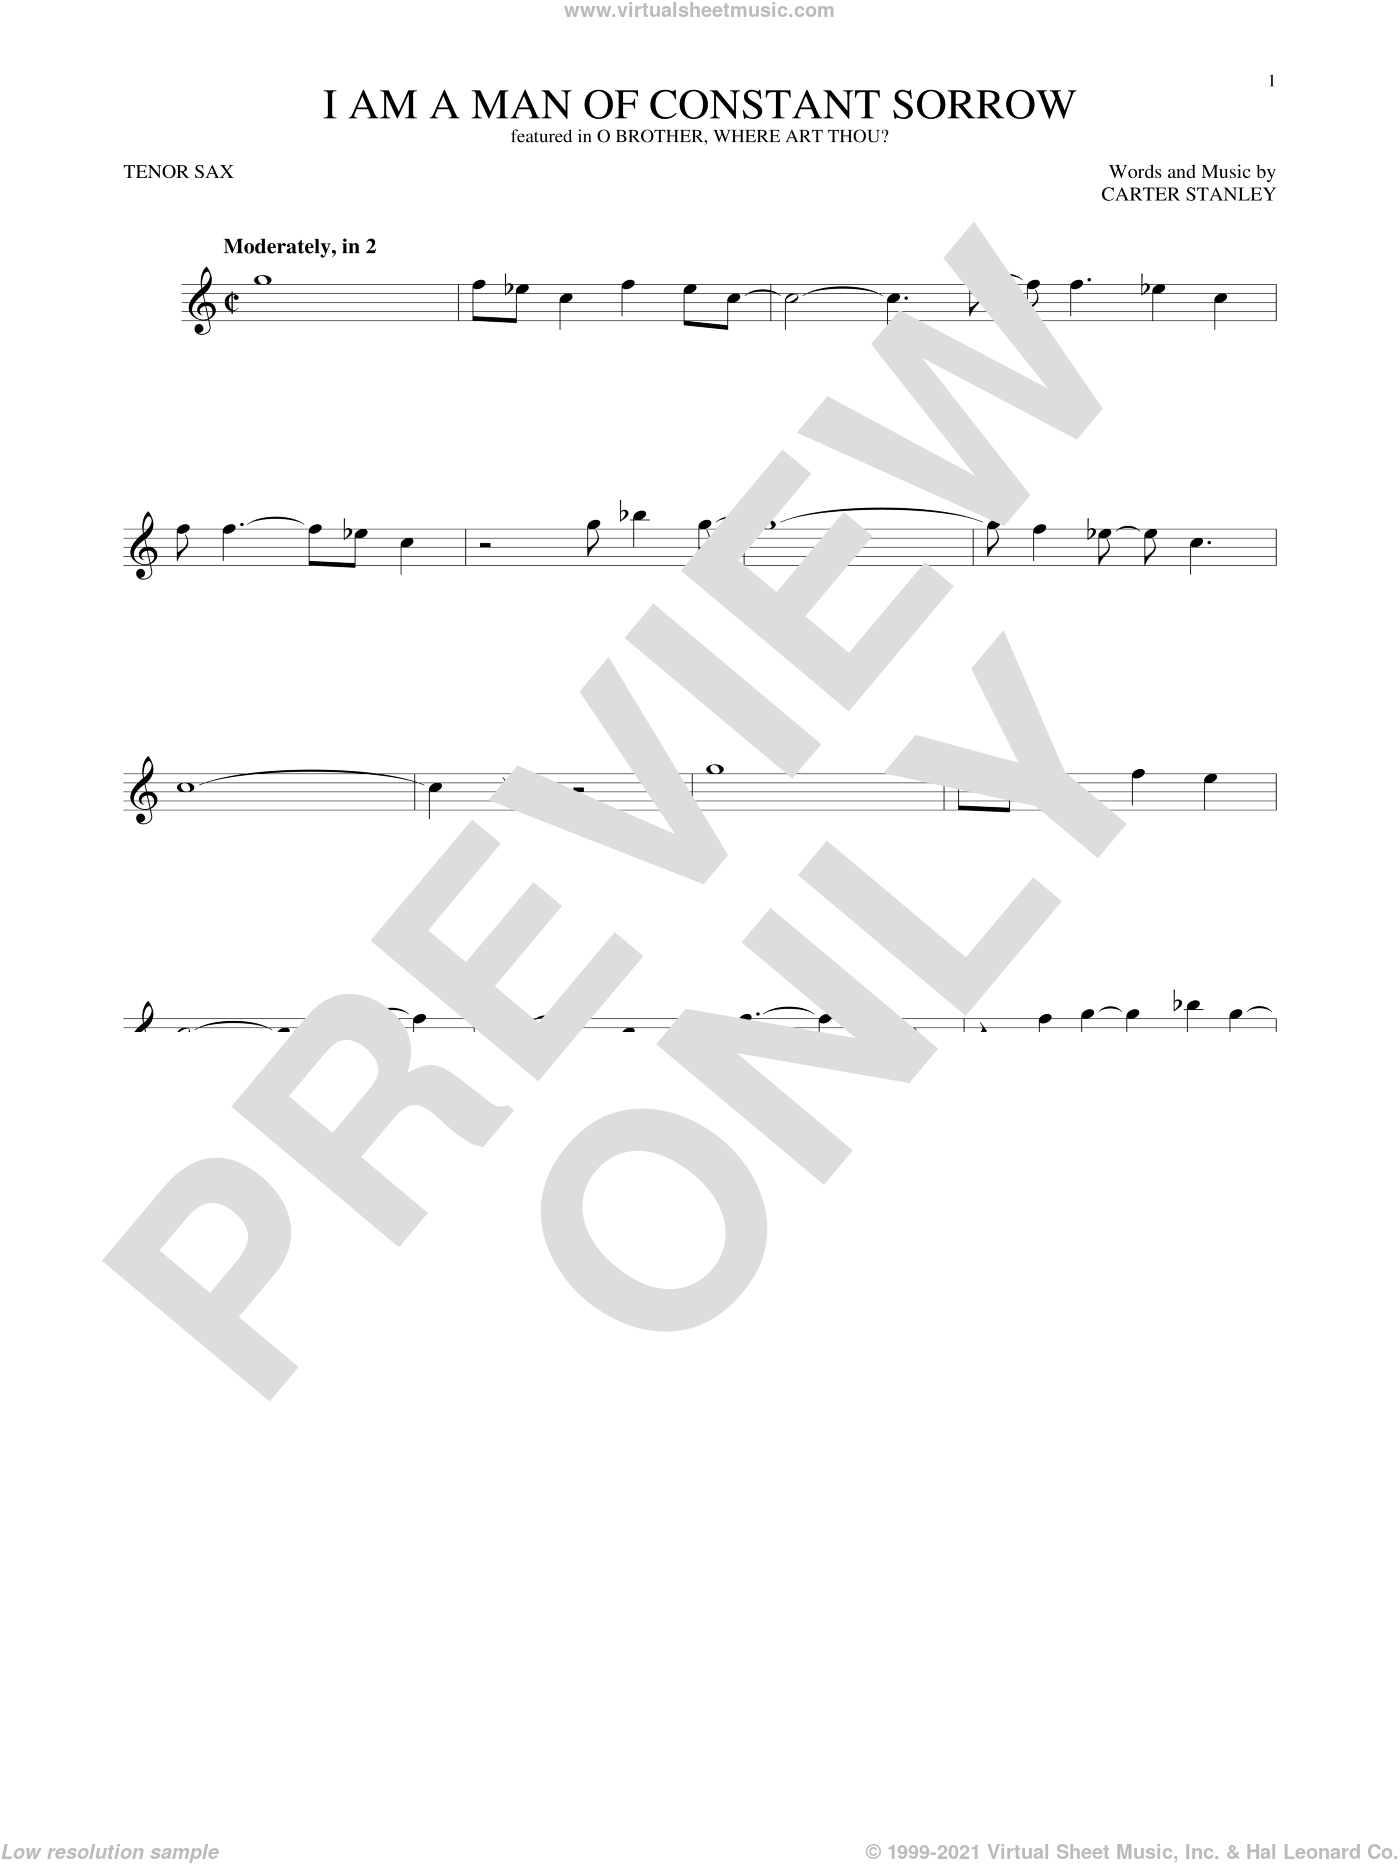 I Am A Man Of Constant Sorrow sheet music for tenor saxophone solo by Carter Stanley, Charm City Devils and The Soggy Bottom Boys, intermediate skill level